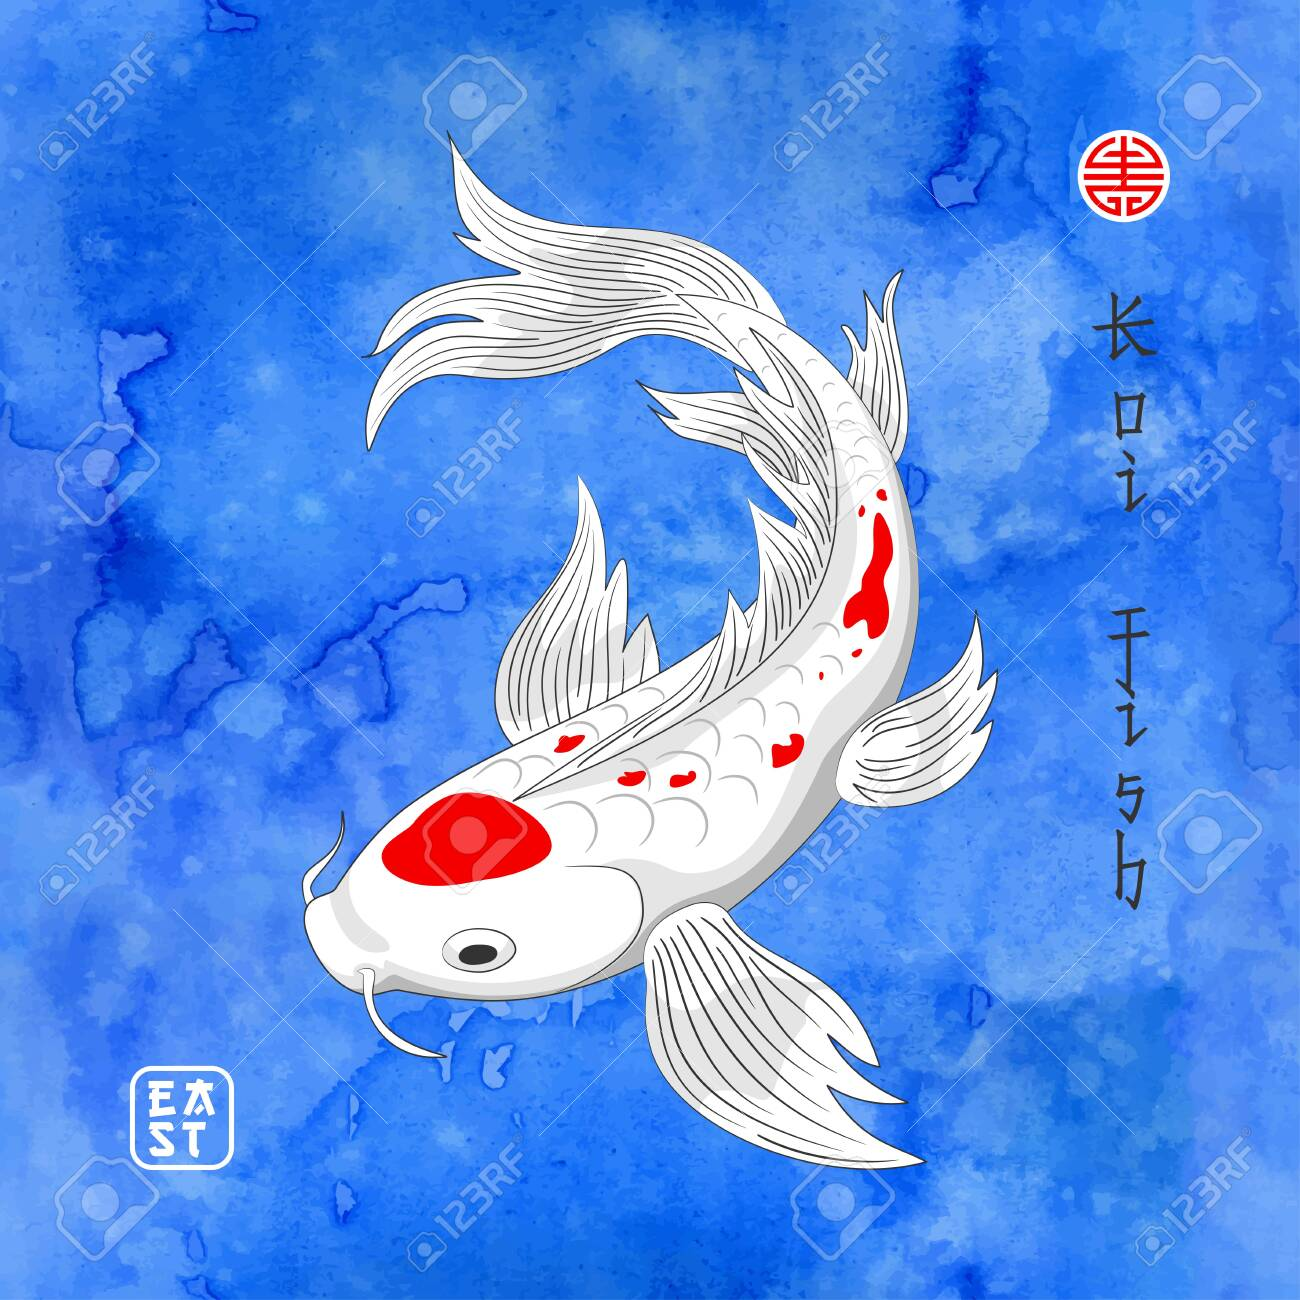 Japanese Koi Carp On Seamless Watercolor Blue Background Inscription Royalty Free Cliparts Vectors And Stock Illustration Image 122695463